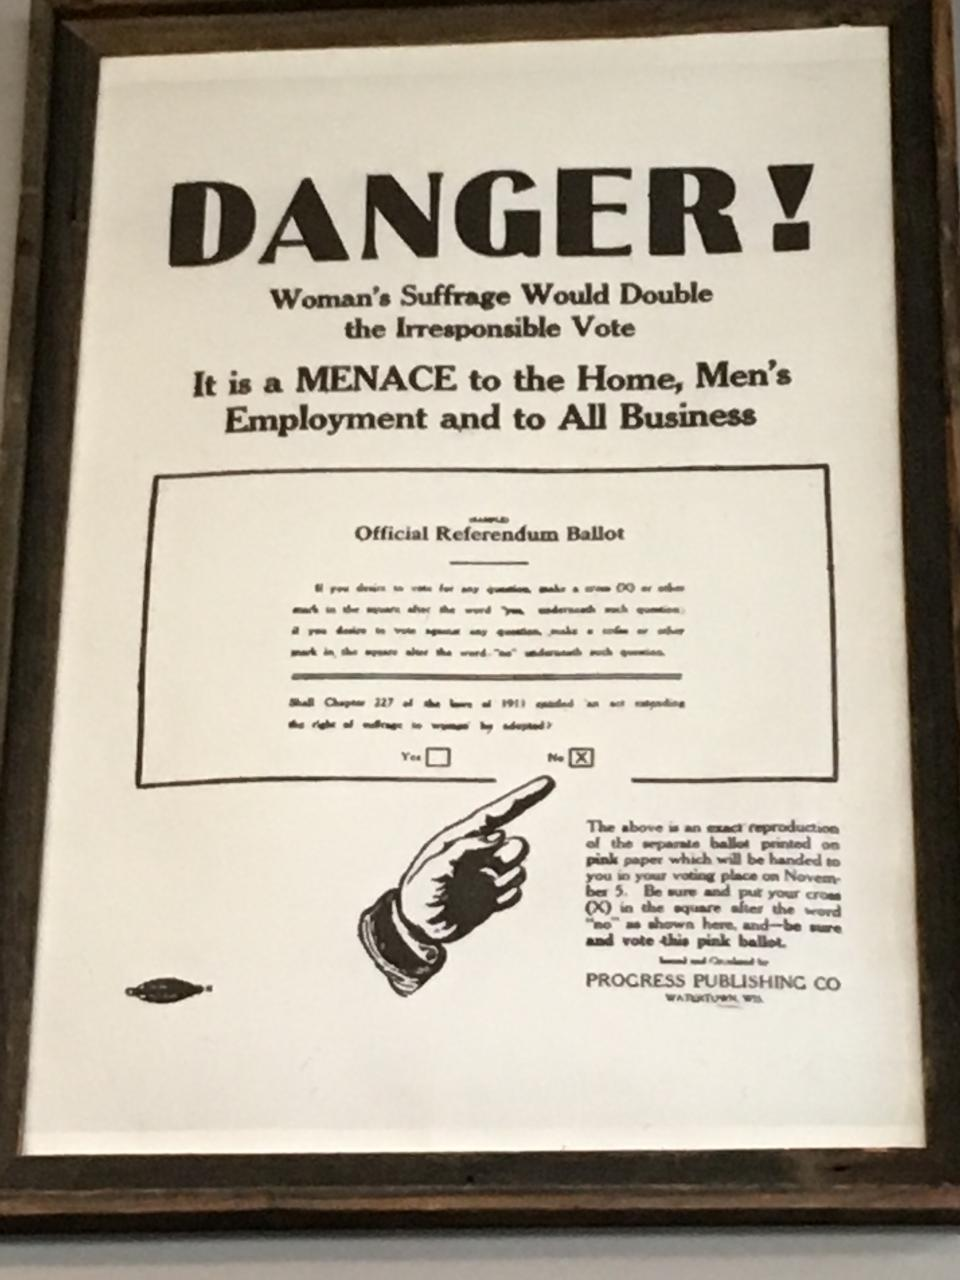 Danger! Women's Suffrage Would Double the Irresponsible Vote.